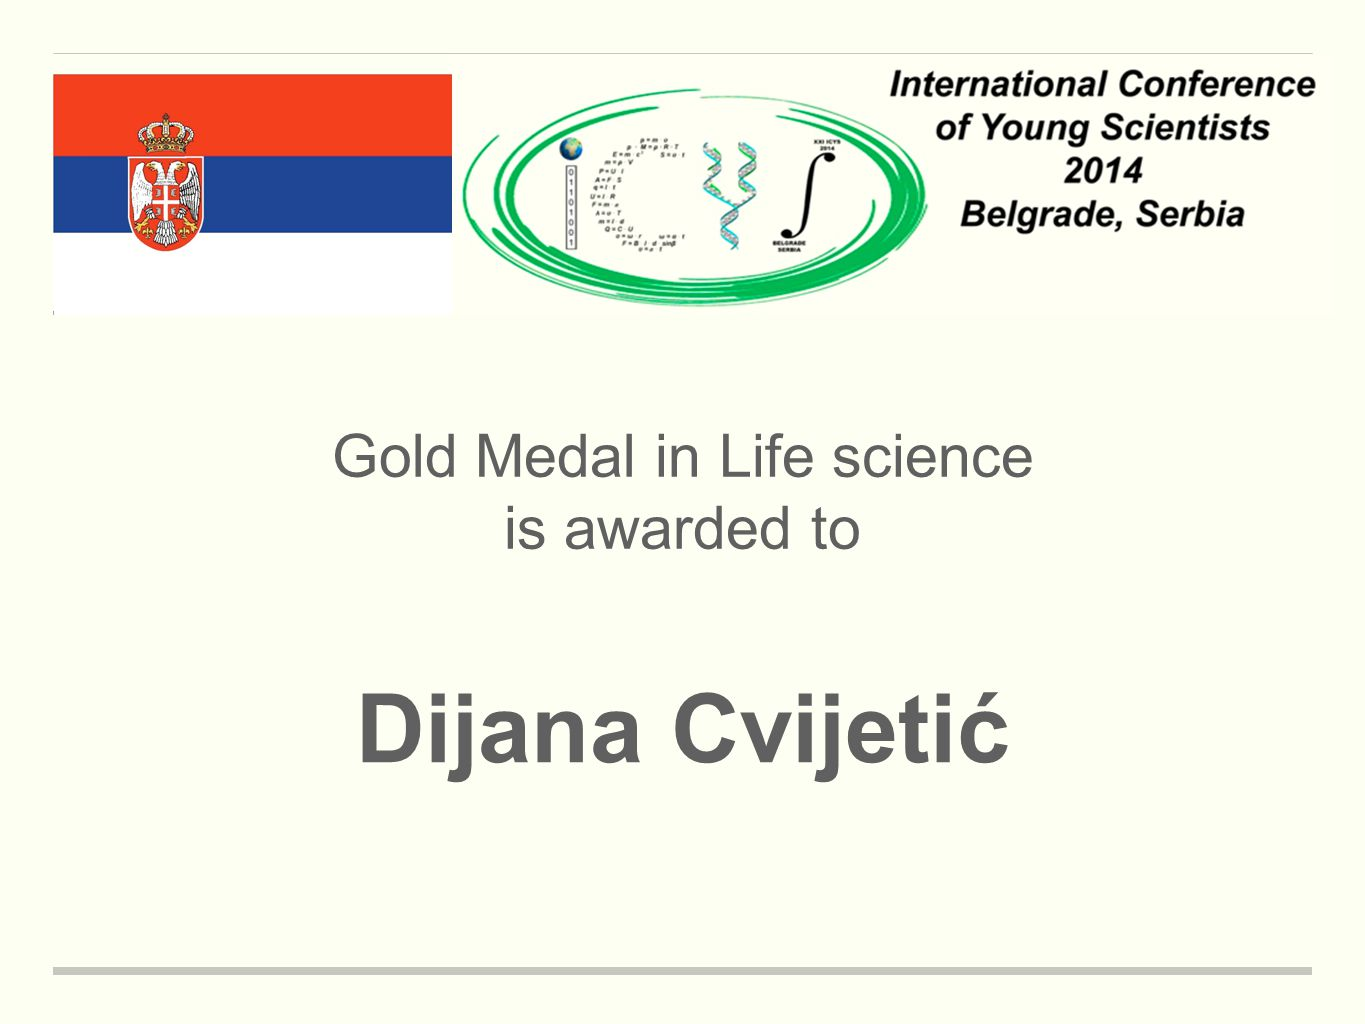 Gold Medal in Life science is awarded to Dijana Cvijetić